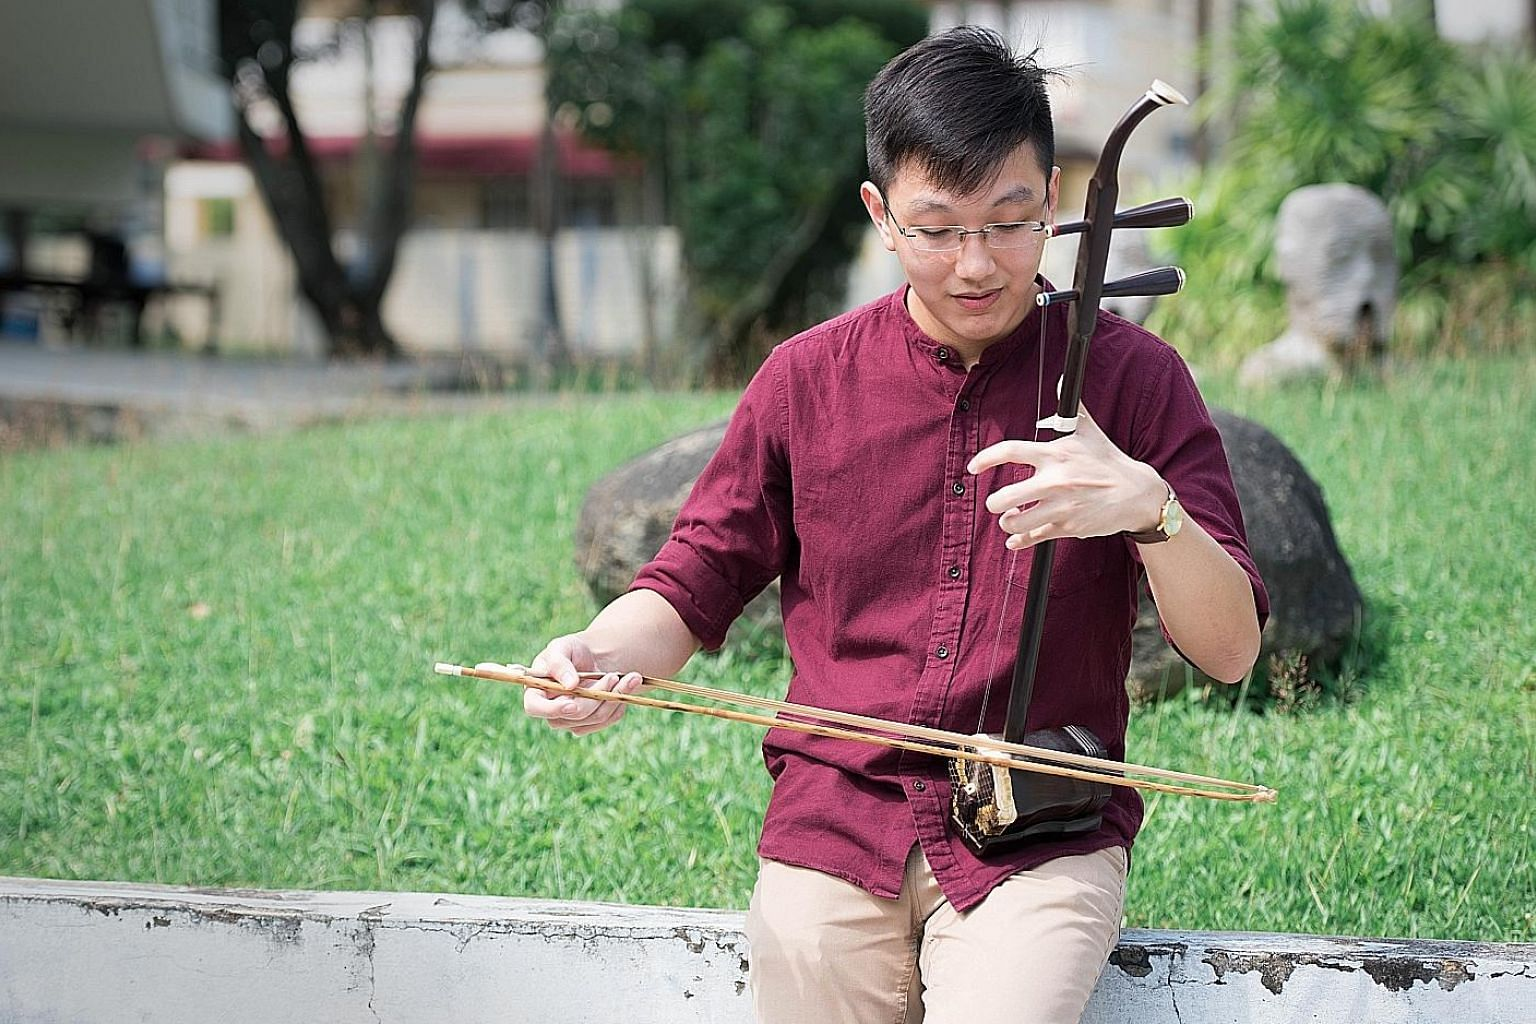 Freelance composer Phang Kok Jun, 29, playing the erhu. He started composing music while serving NS.